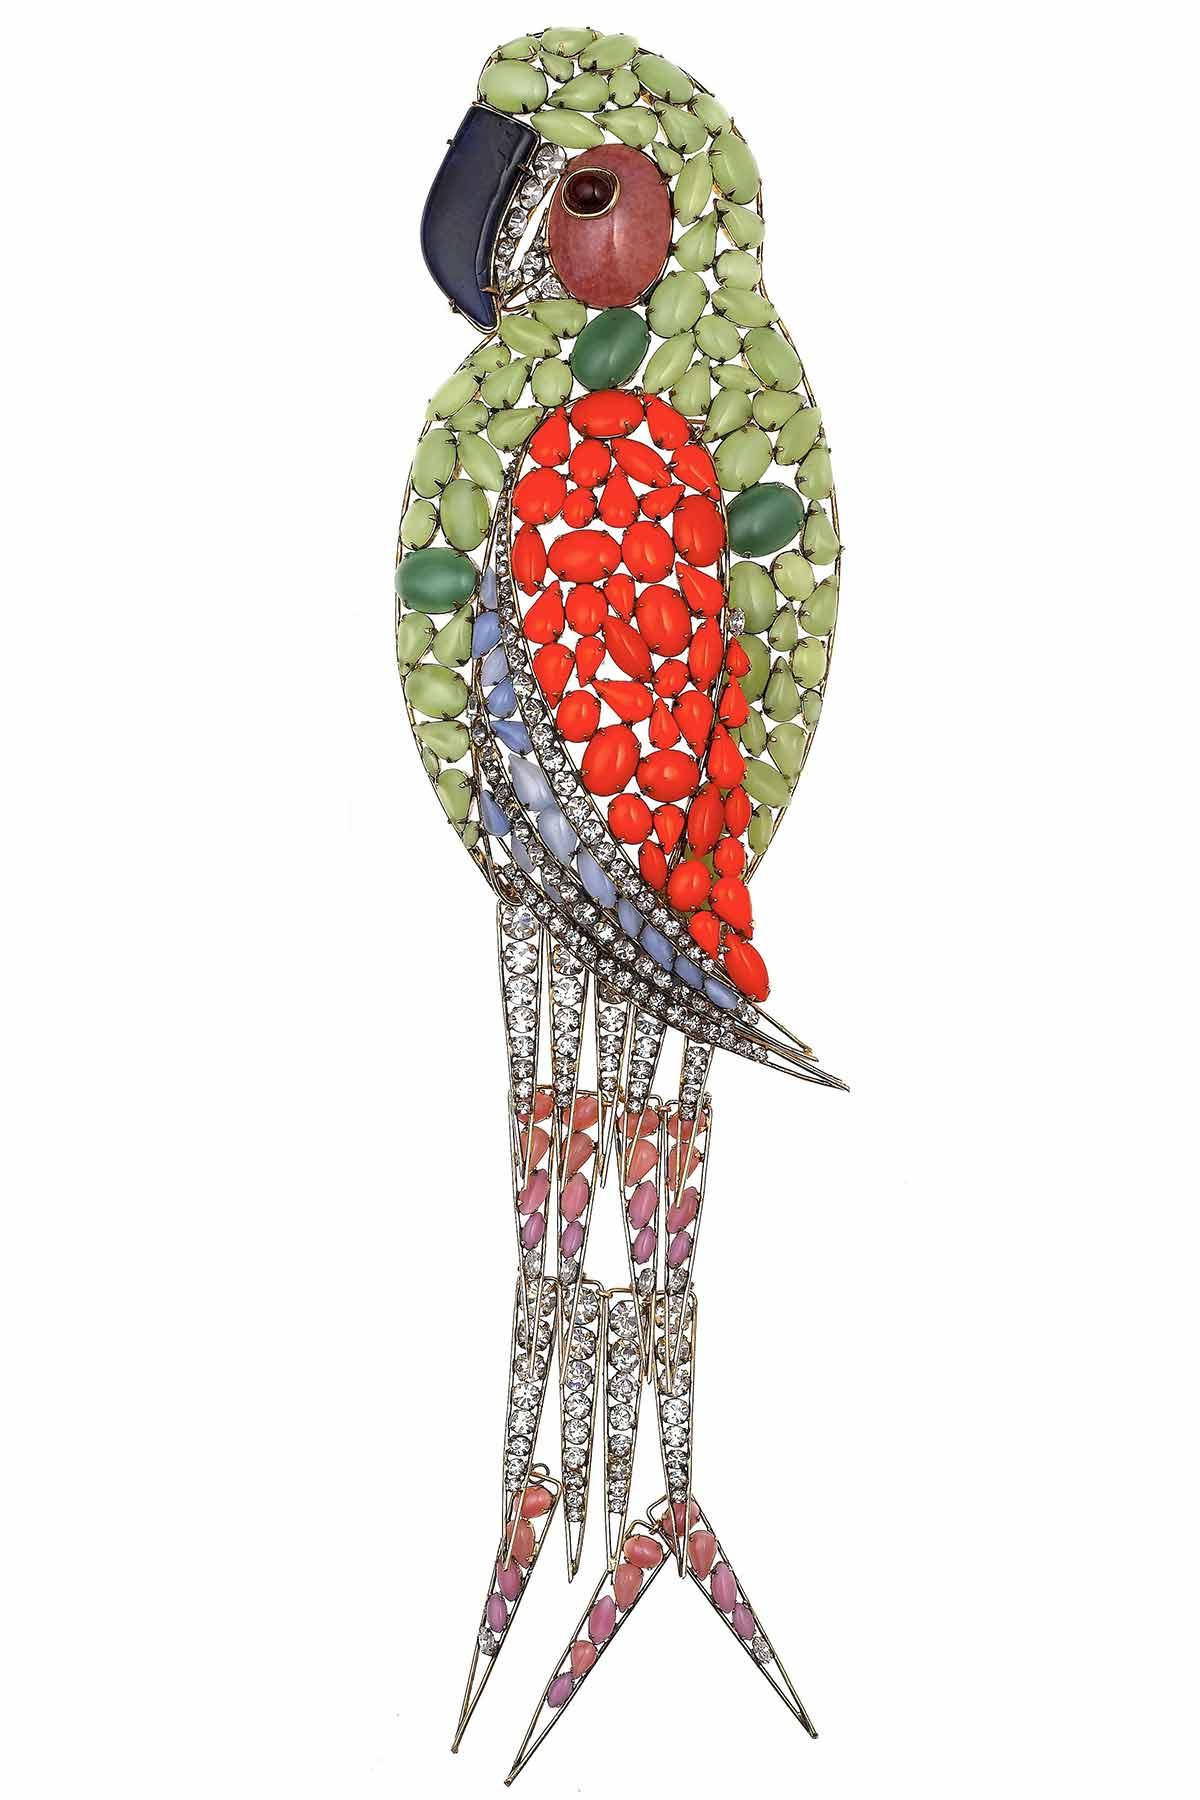 Parrot brooch, Iradji Moini for Oscar de la Renta, 1985-1990 ©Swarovski Corporate Archive